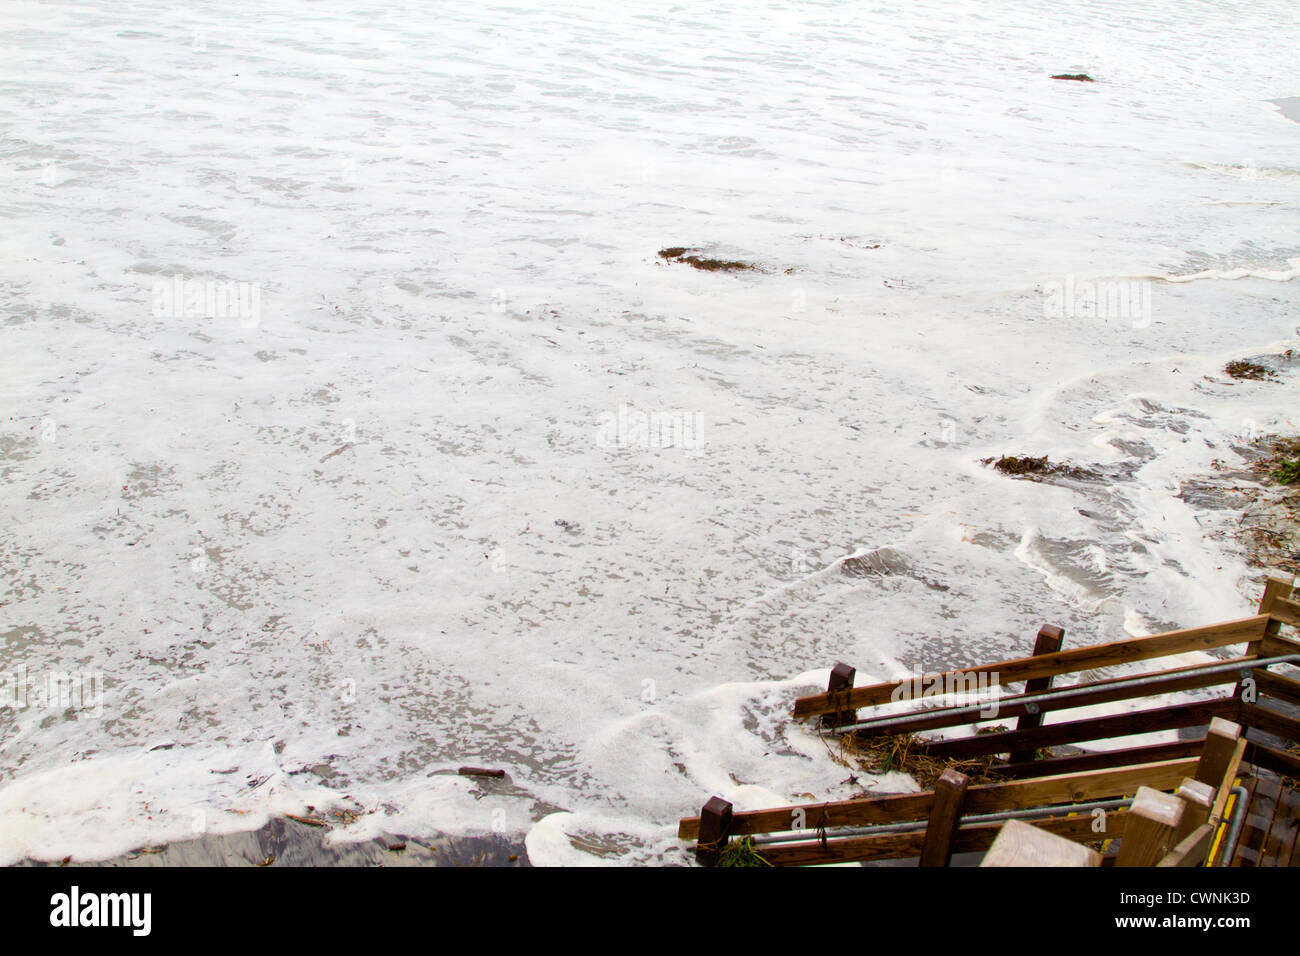 The waves crash on the shore flooding the stairs at high tide on Carmel Beach , California. - Stock Image